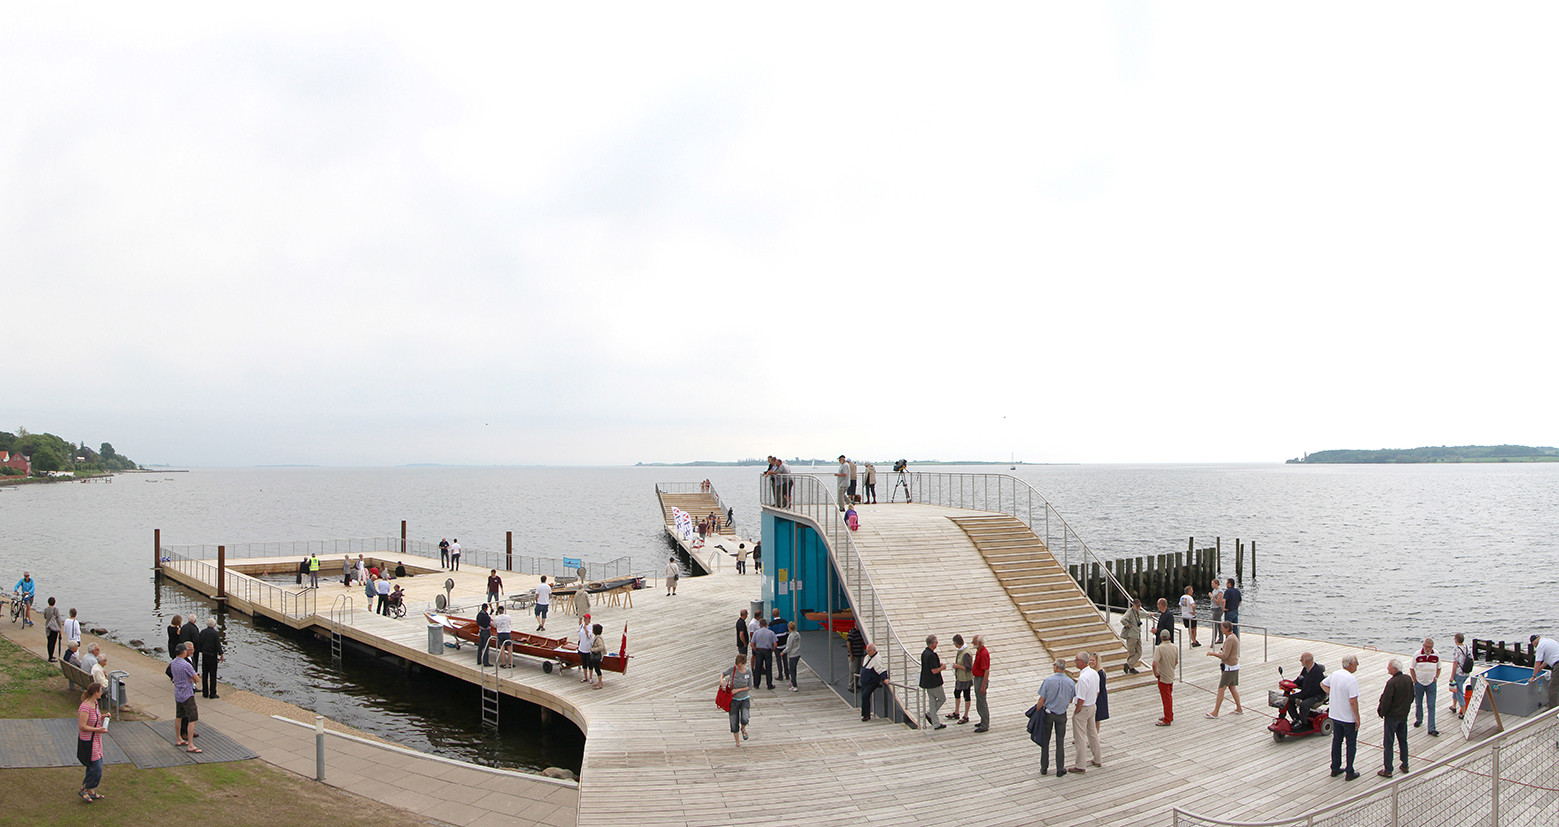 Faaborg Harbor Bath / URBAN AGENCY + JDS + CREO ARKITEKTER, Courtesy of Urban Agency